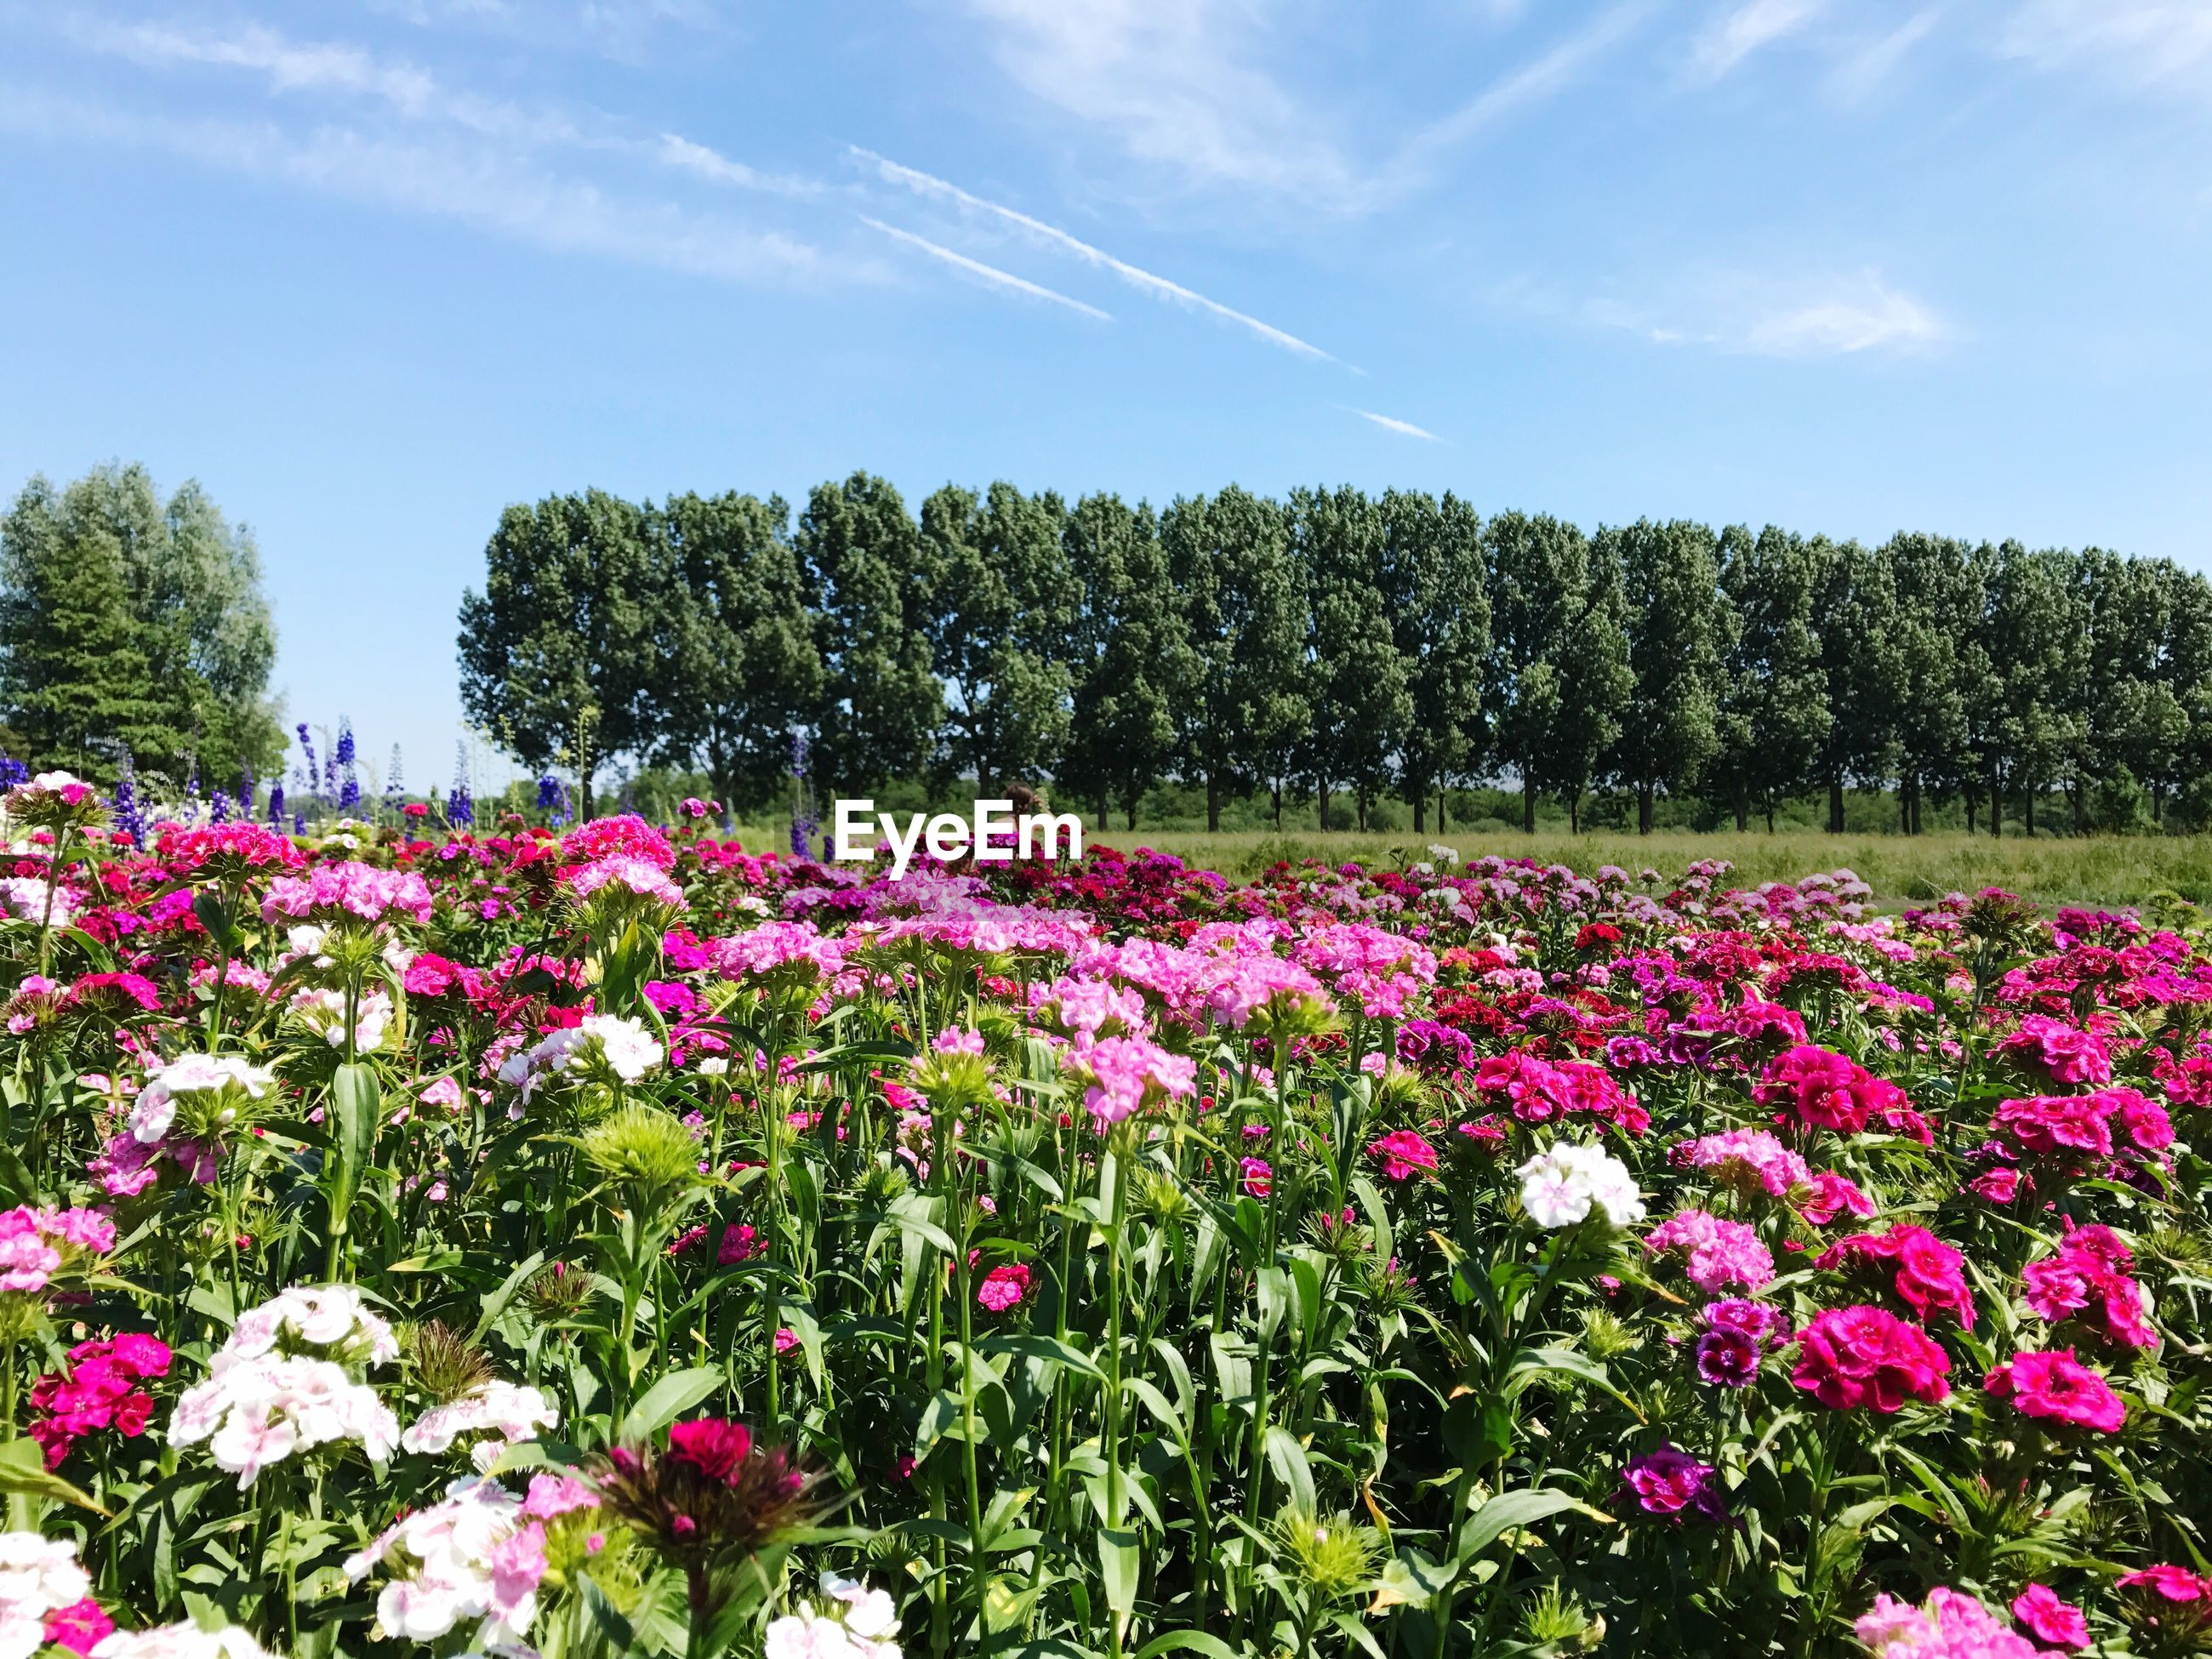 VIEW OF FLOWERS GROWING ON FIELD